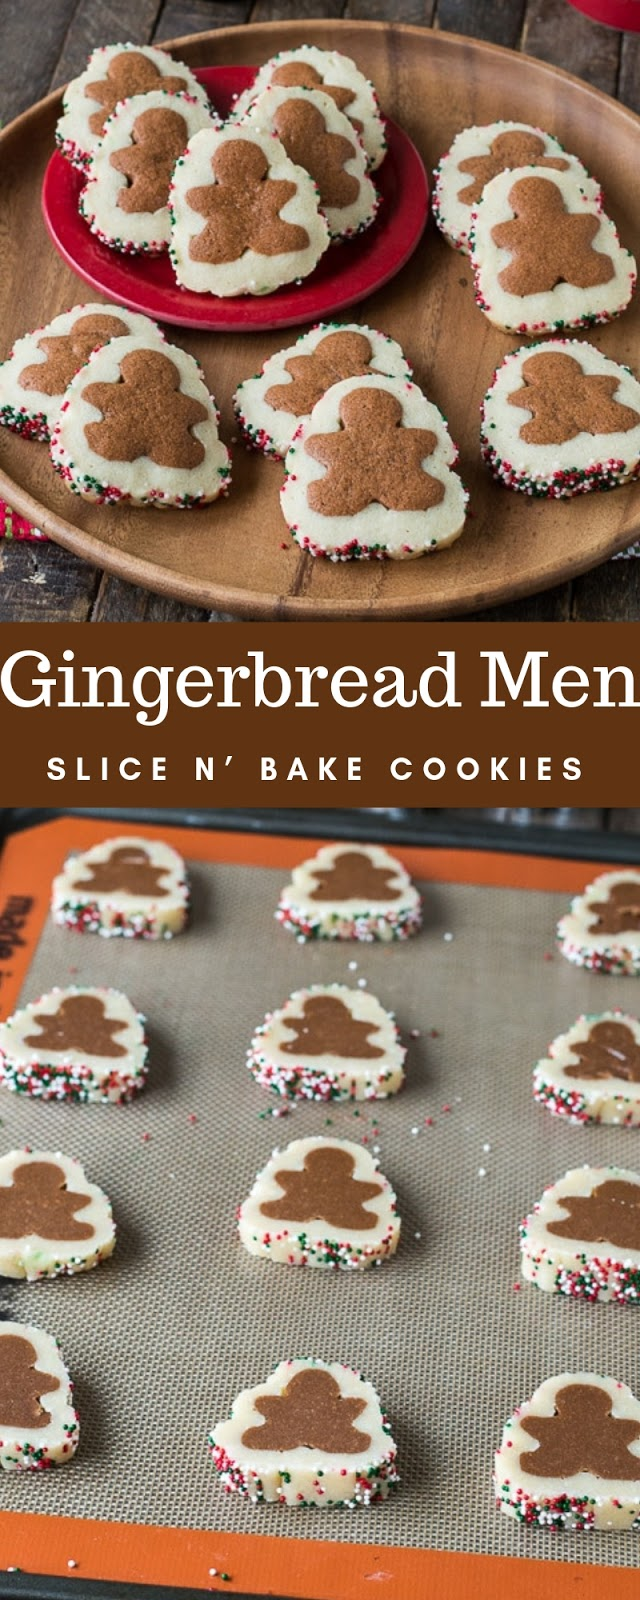 Gingerbread Men Slice N' Bake Cookies